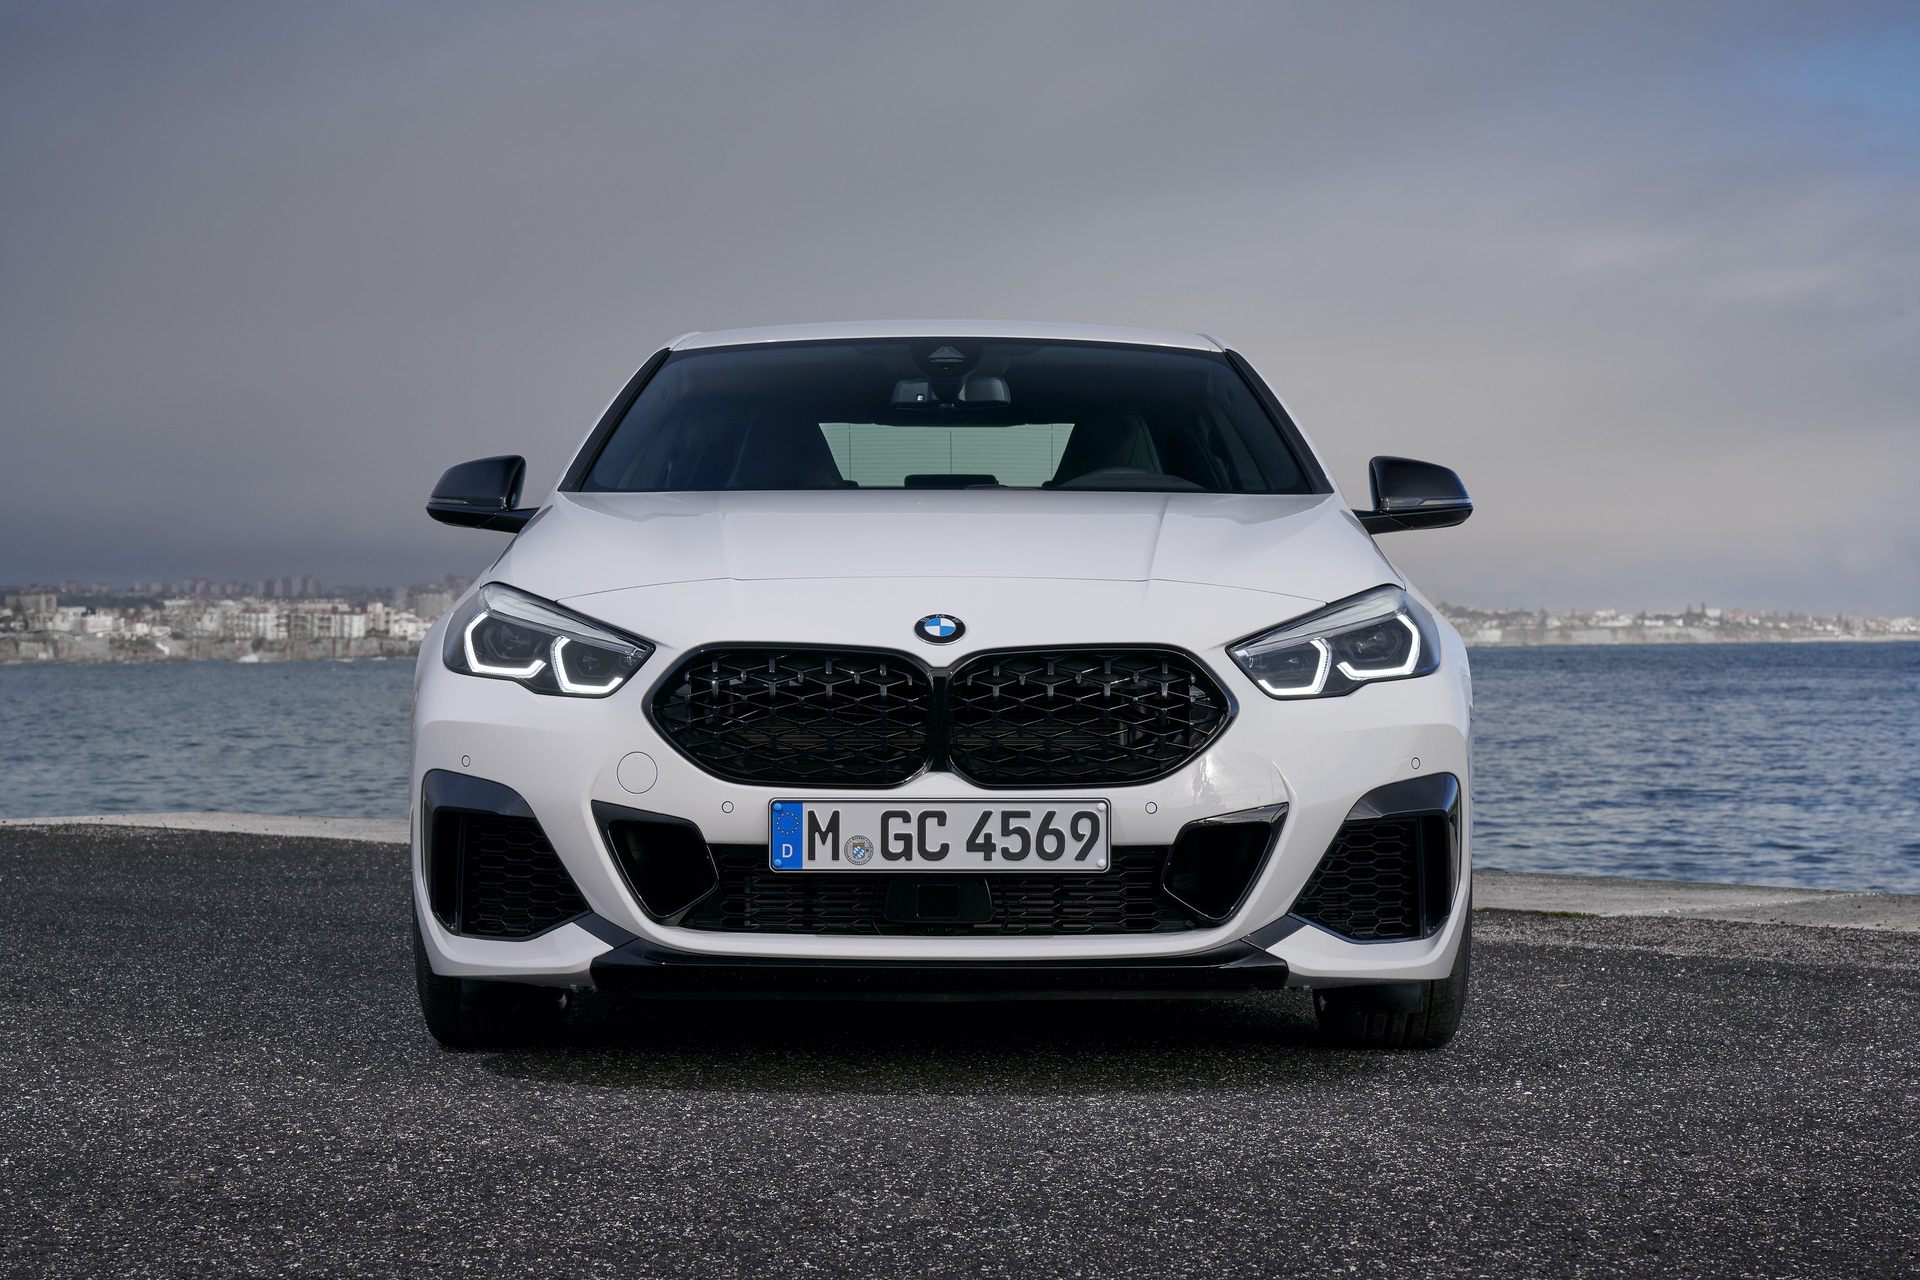 2020 BMW M235i xDrive Gran Coupe 50